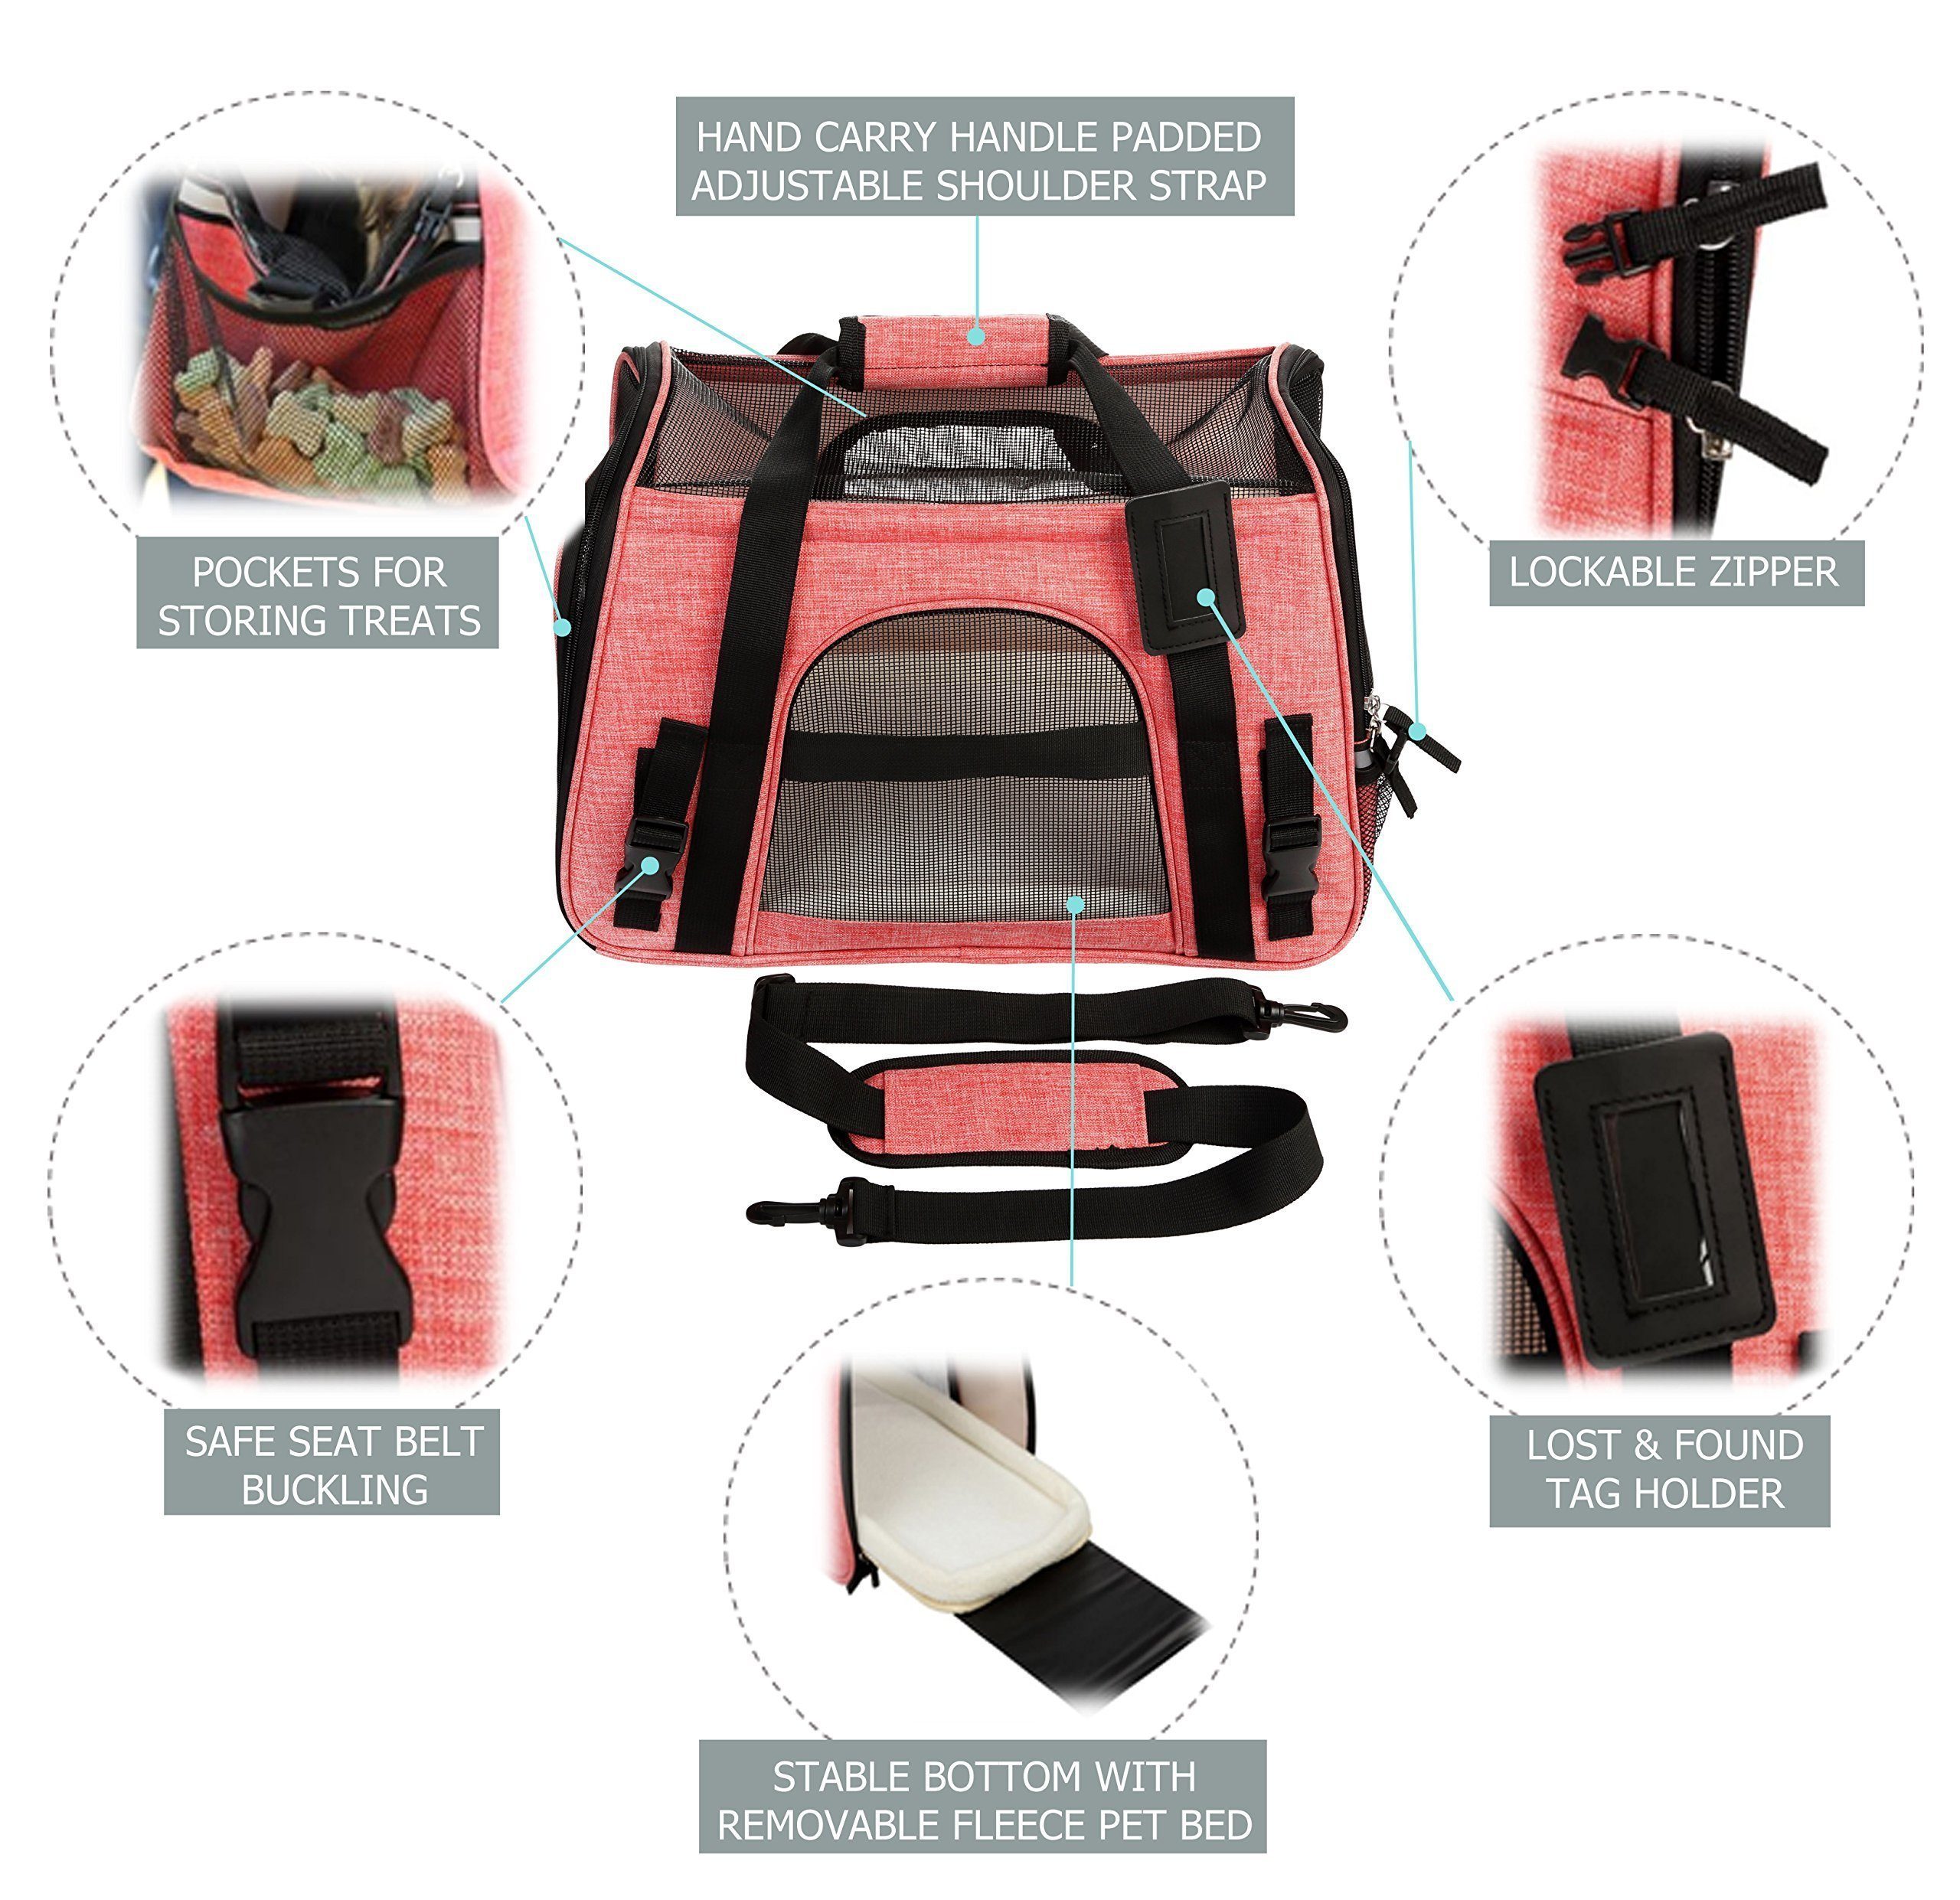 9e13b61812 TailHouse Pet Carrier Airline Approved for Dogs Cats Puppies  Pink Purse  Travel Bag fits Under seat- Premium Soft Sided Tote w Fleece Bed and  Shoulder Strap